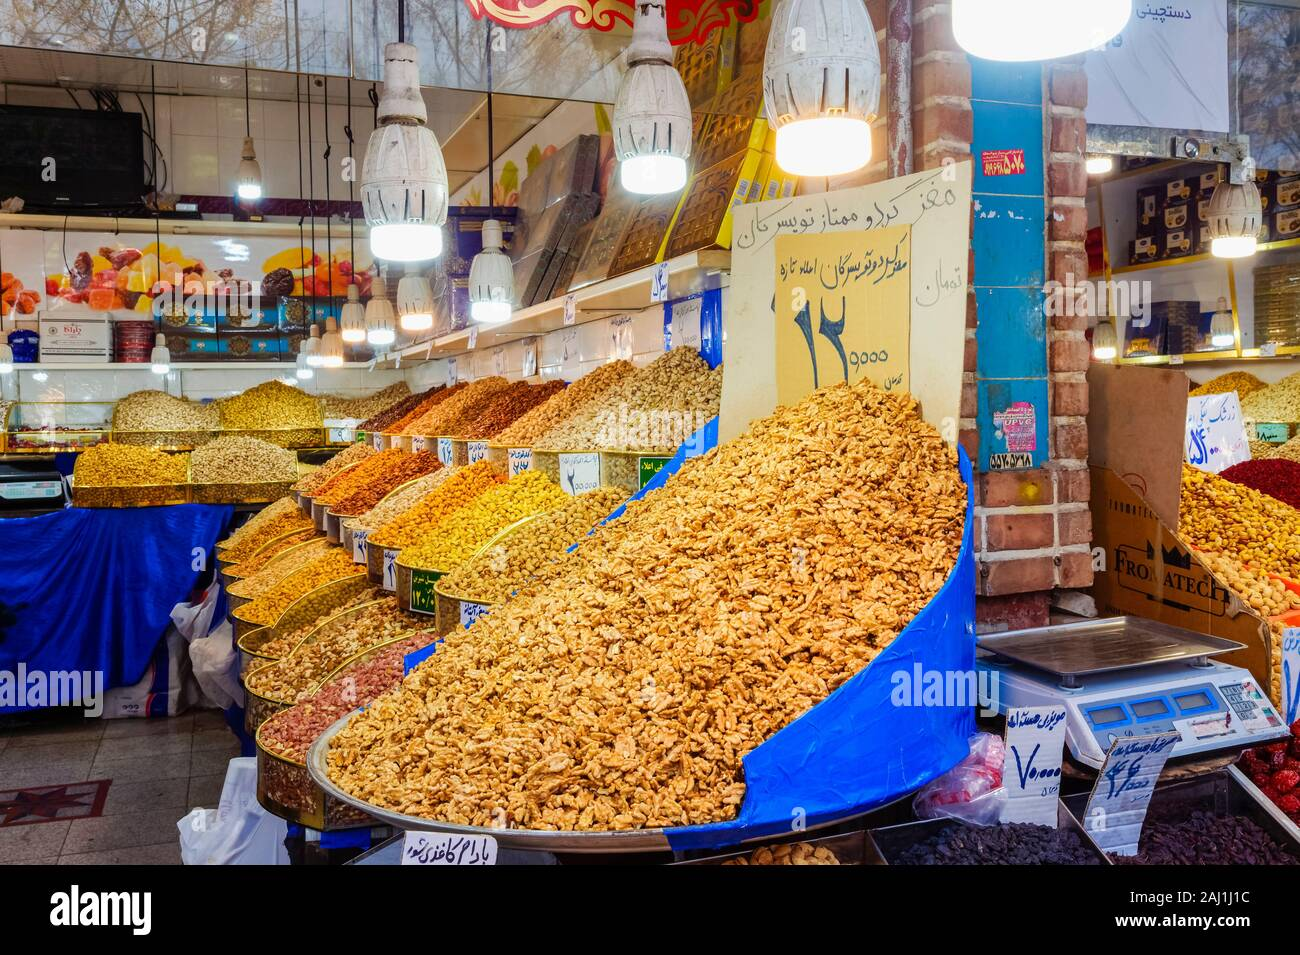 Dried fruits and nuts market stall, Tehran bazaar, Islamic Republic of Iran Stock Photo